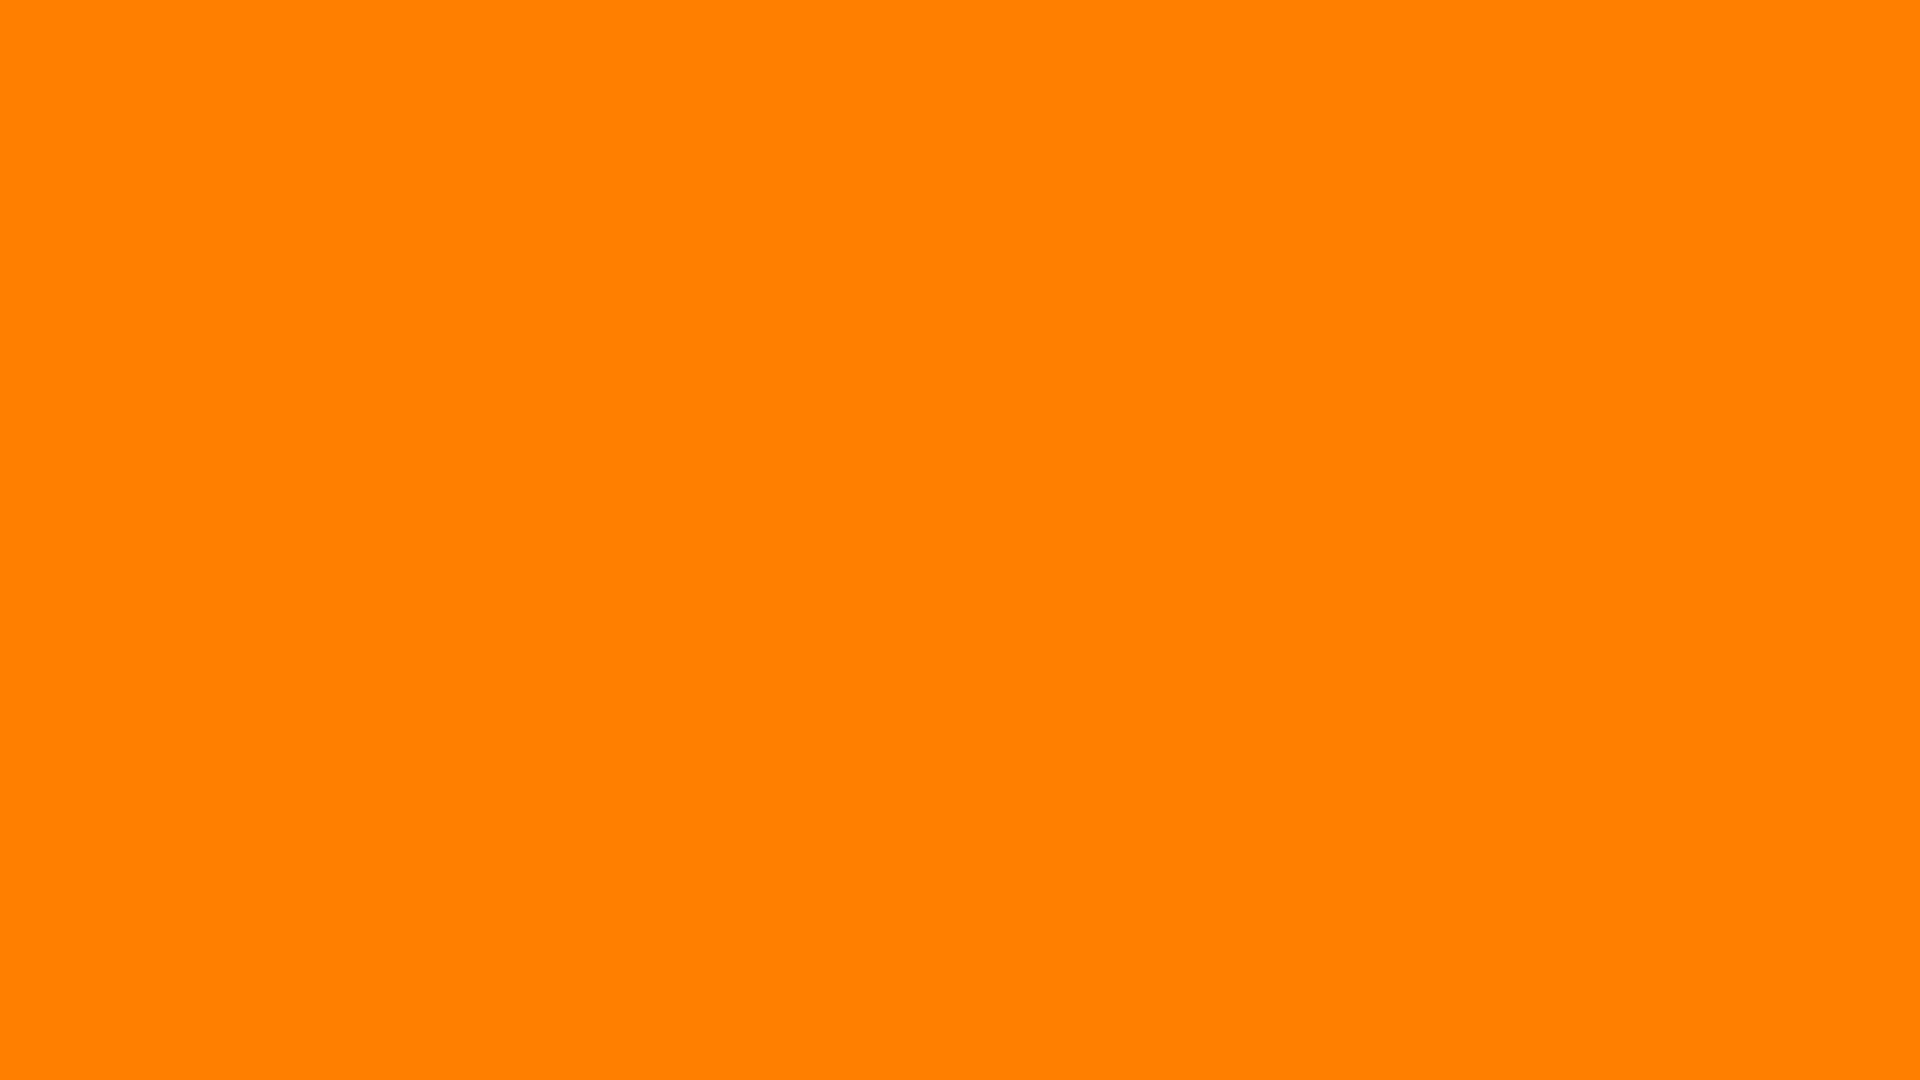 1920x1080 Amber Orange Solid Color Background